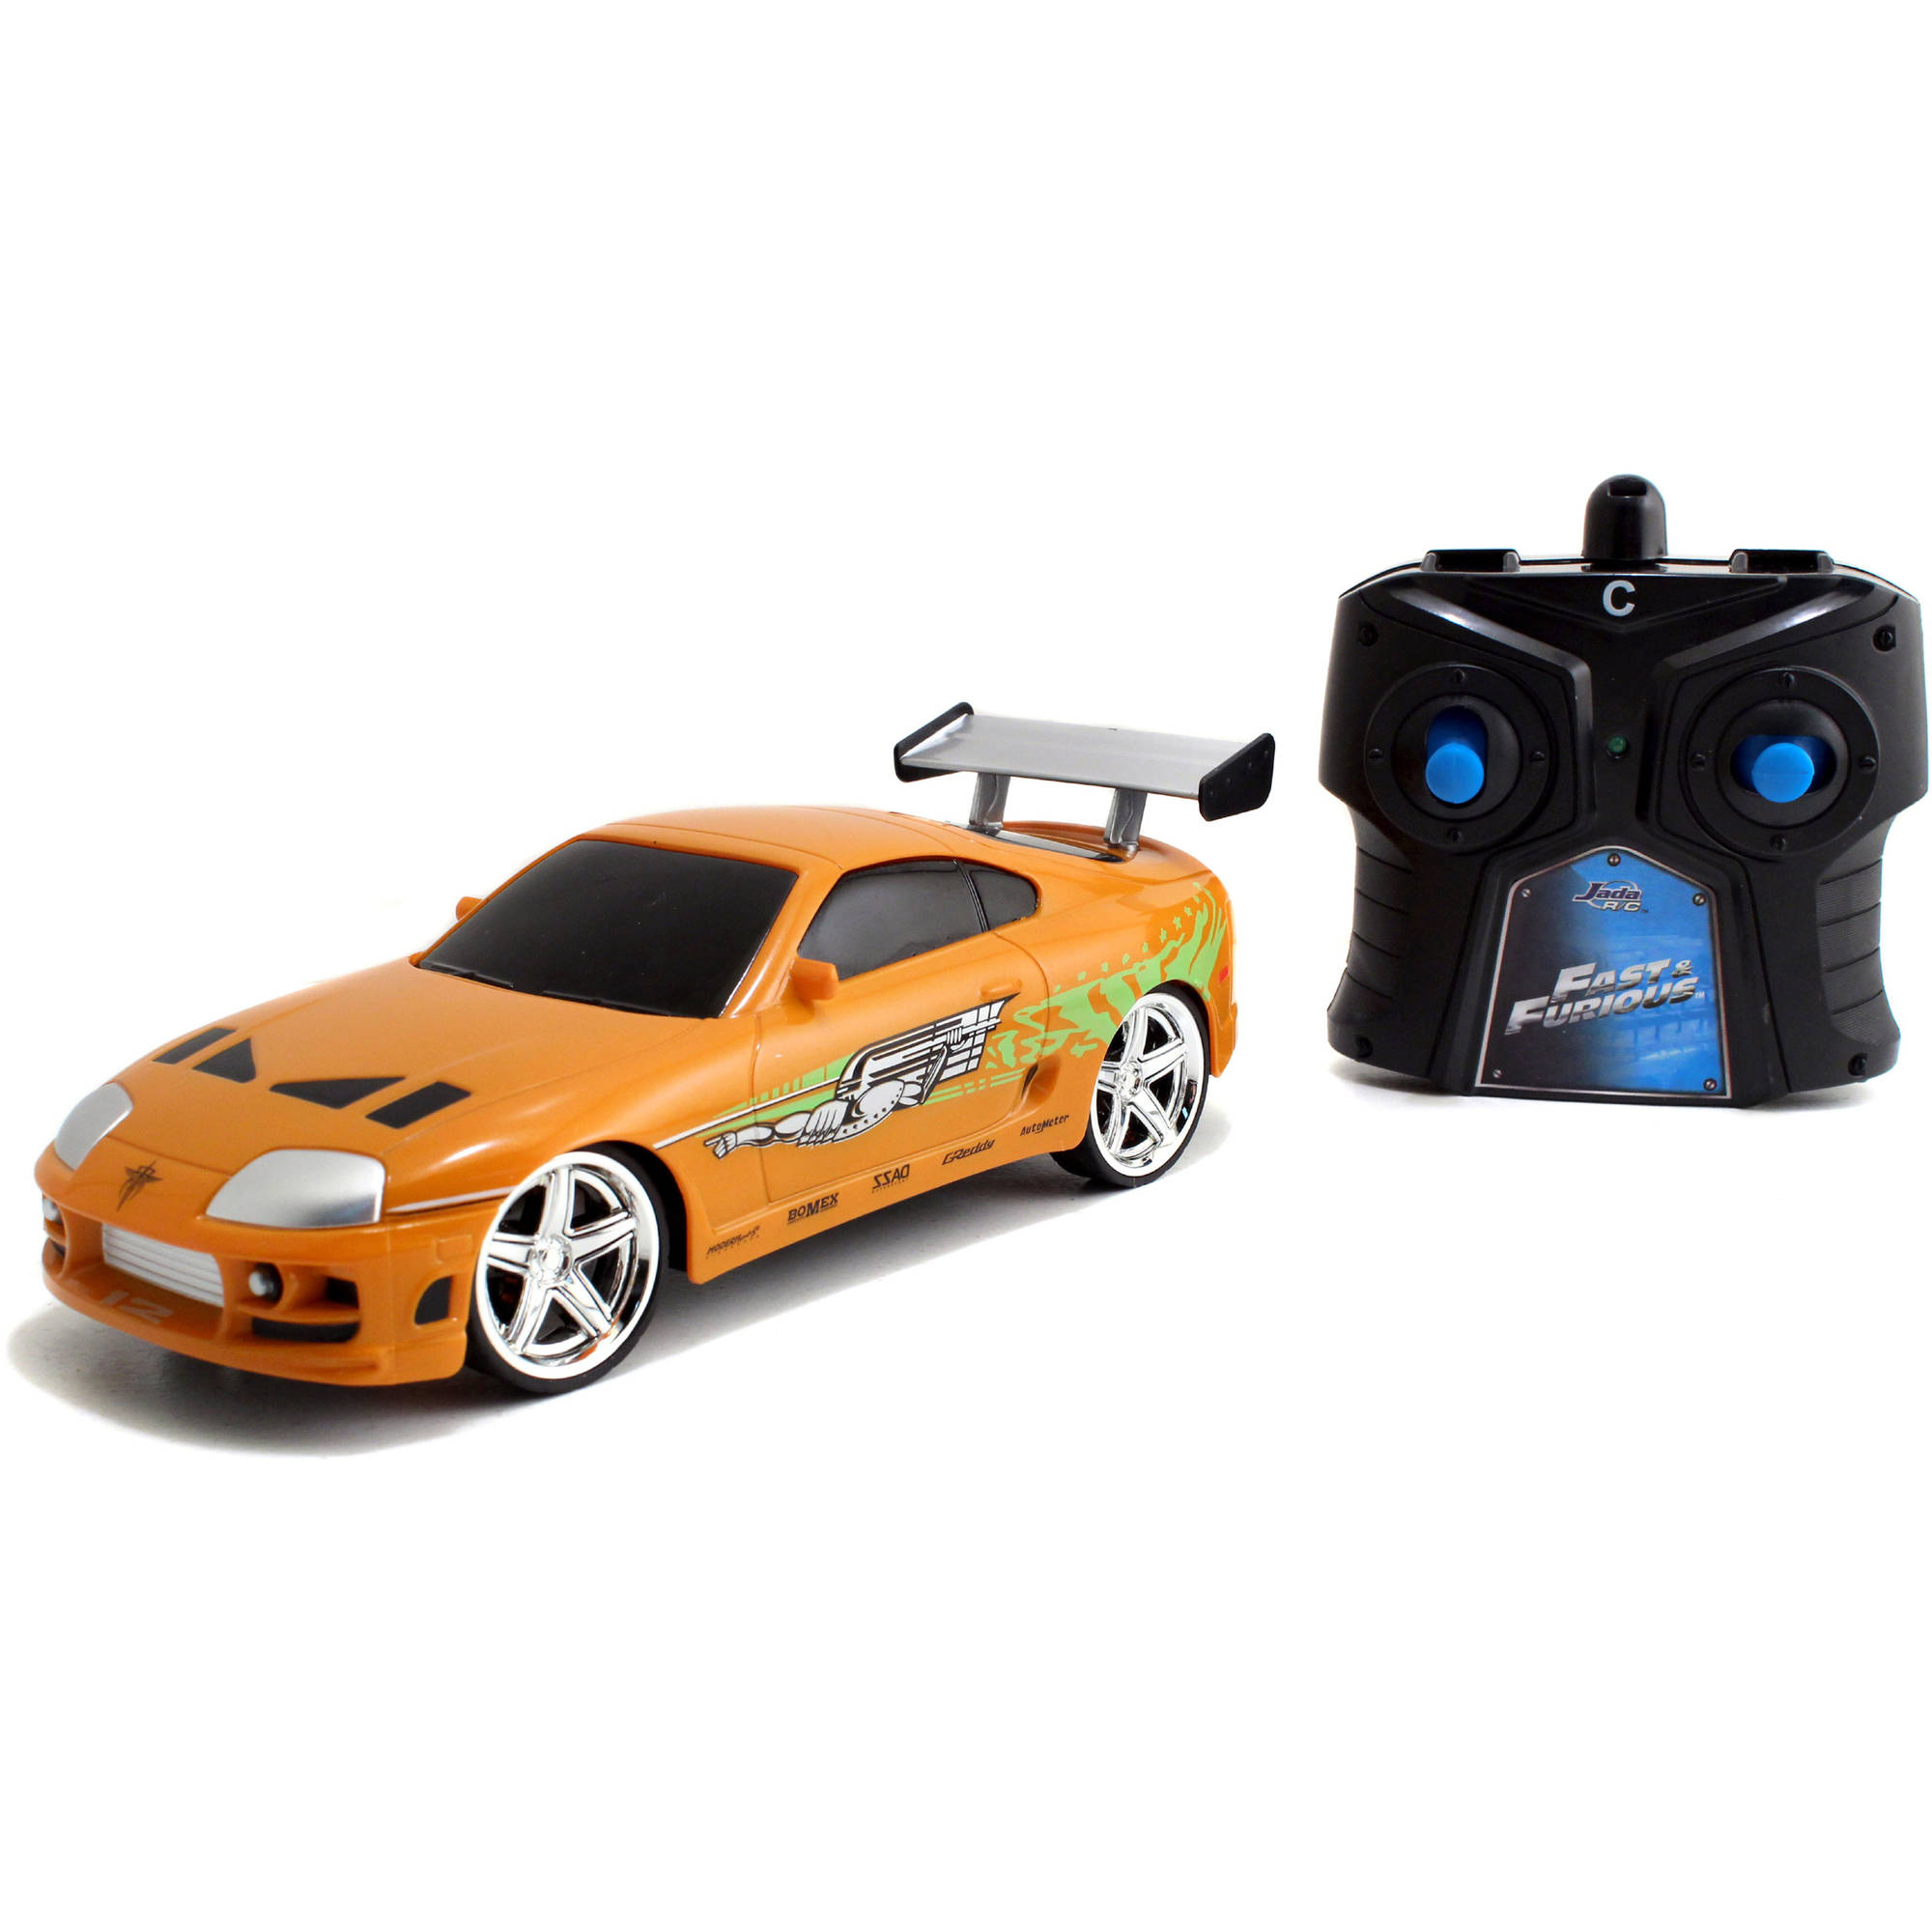 Jada Toys Fast and Furious 1:24 Radio Control Car, Brian's Toyota Supra by Jada Toys